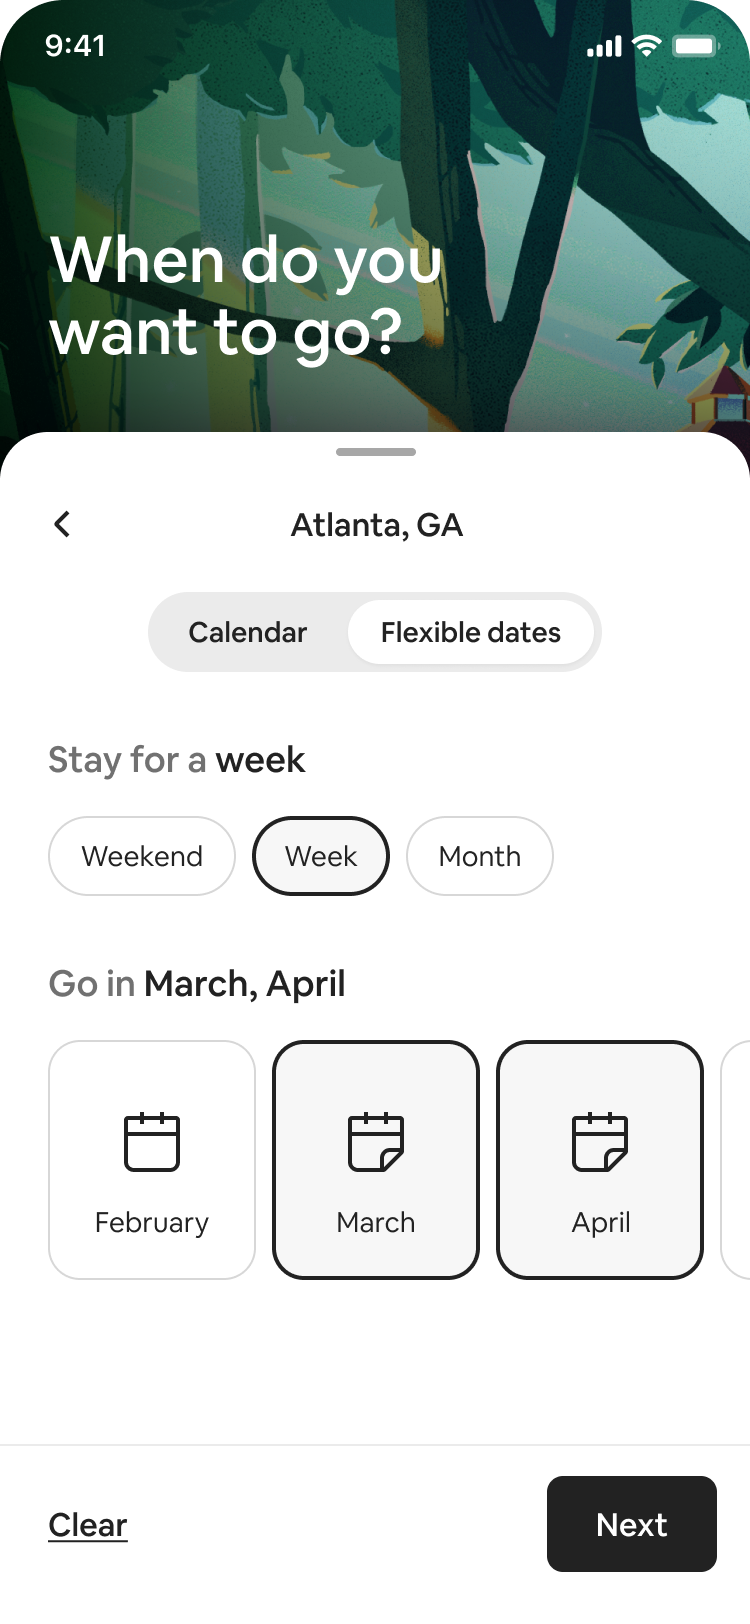 Airbnb launched flexible option offering on February 23, 2021 as more users requested open-ended stays.